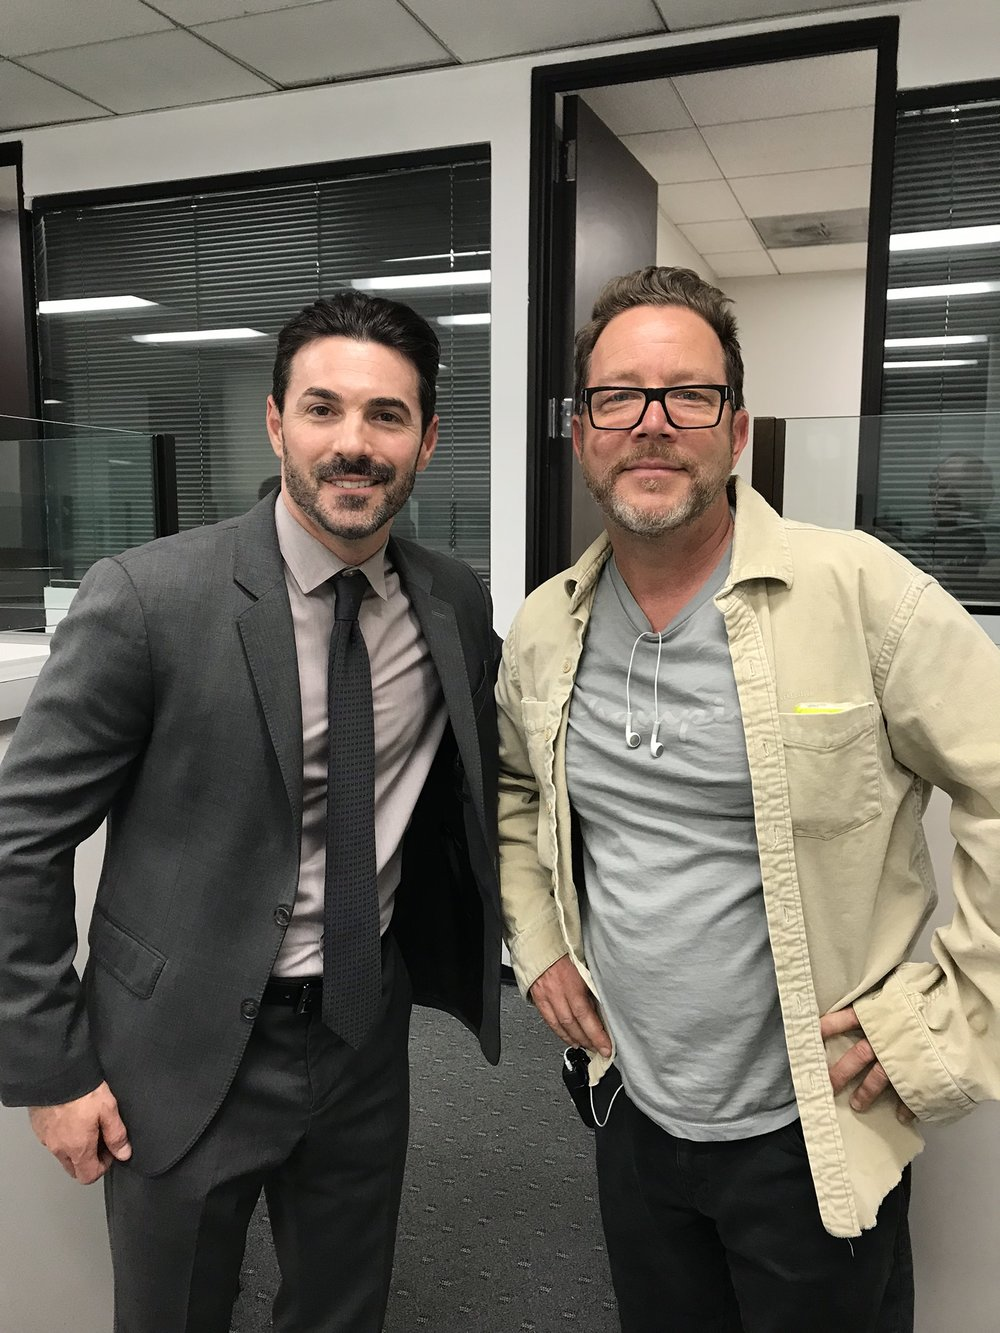 Josh Server (Left) with Director Tom Shell (Right)